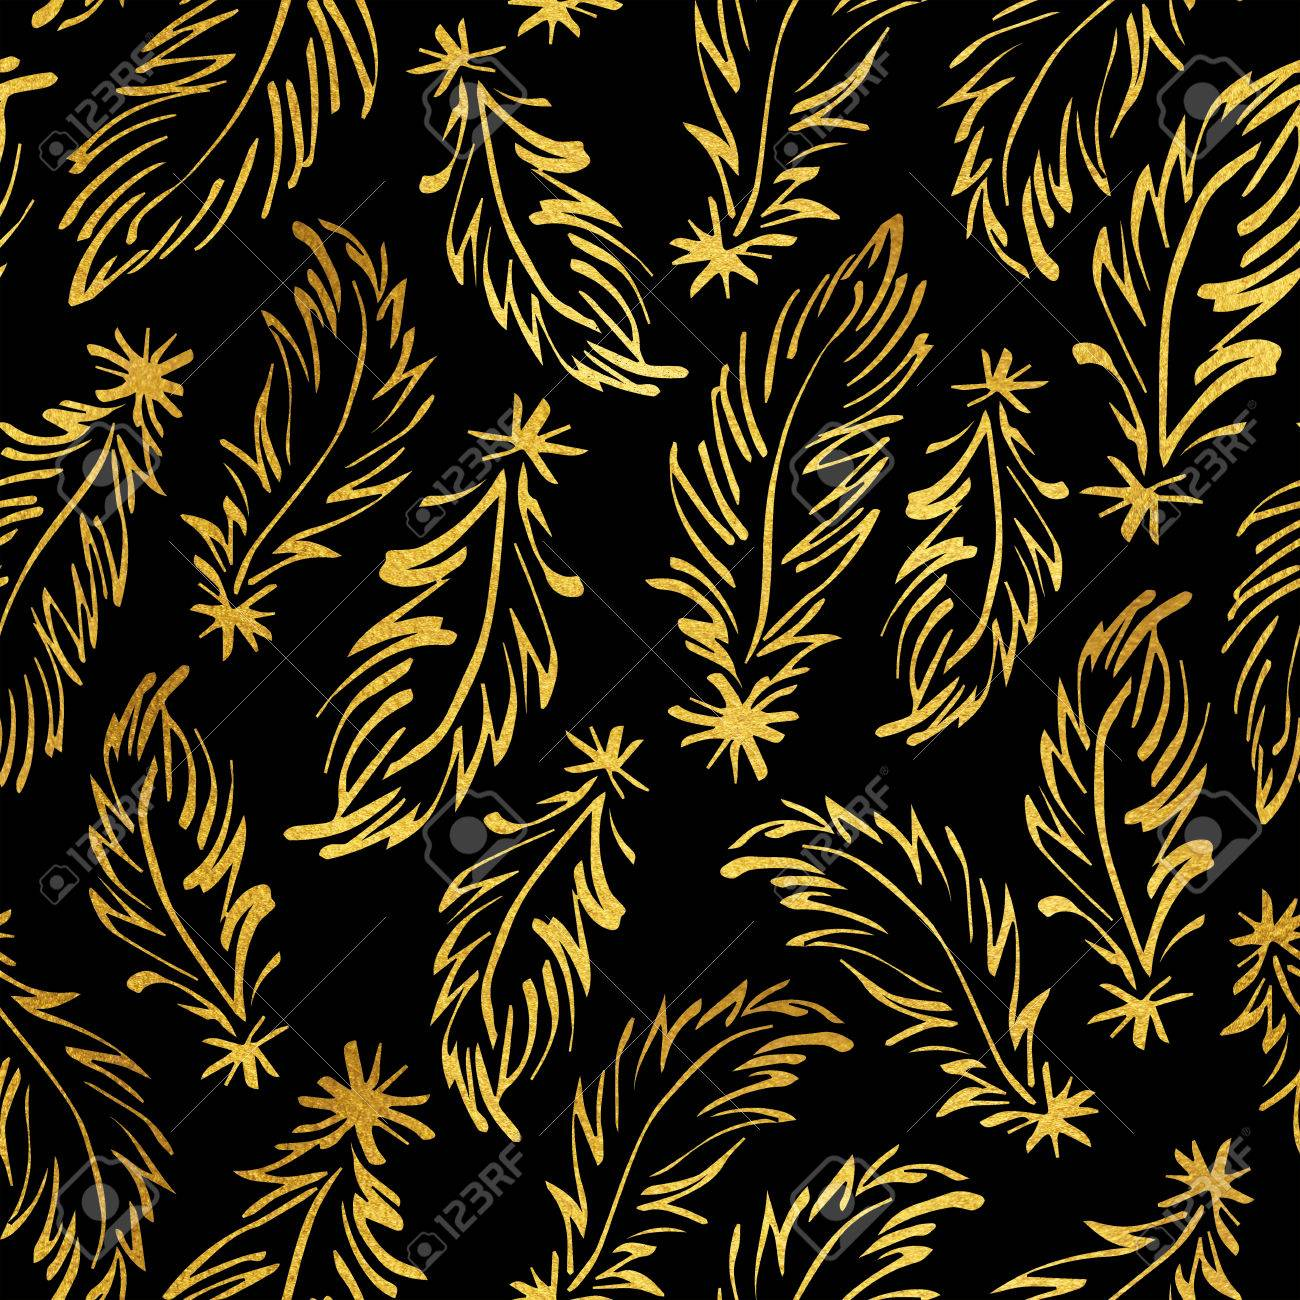 Black and gold feathers